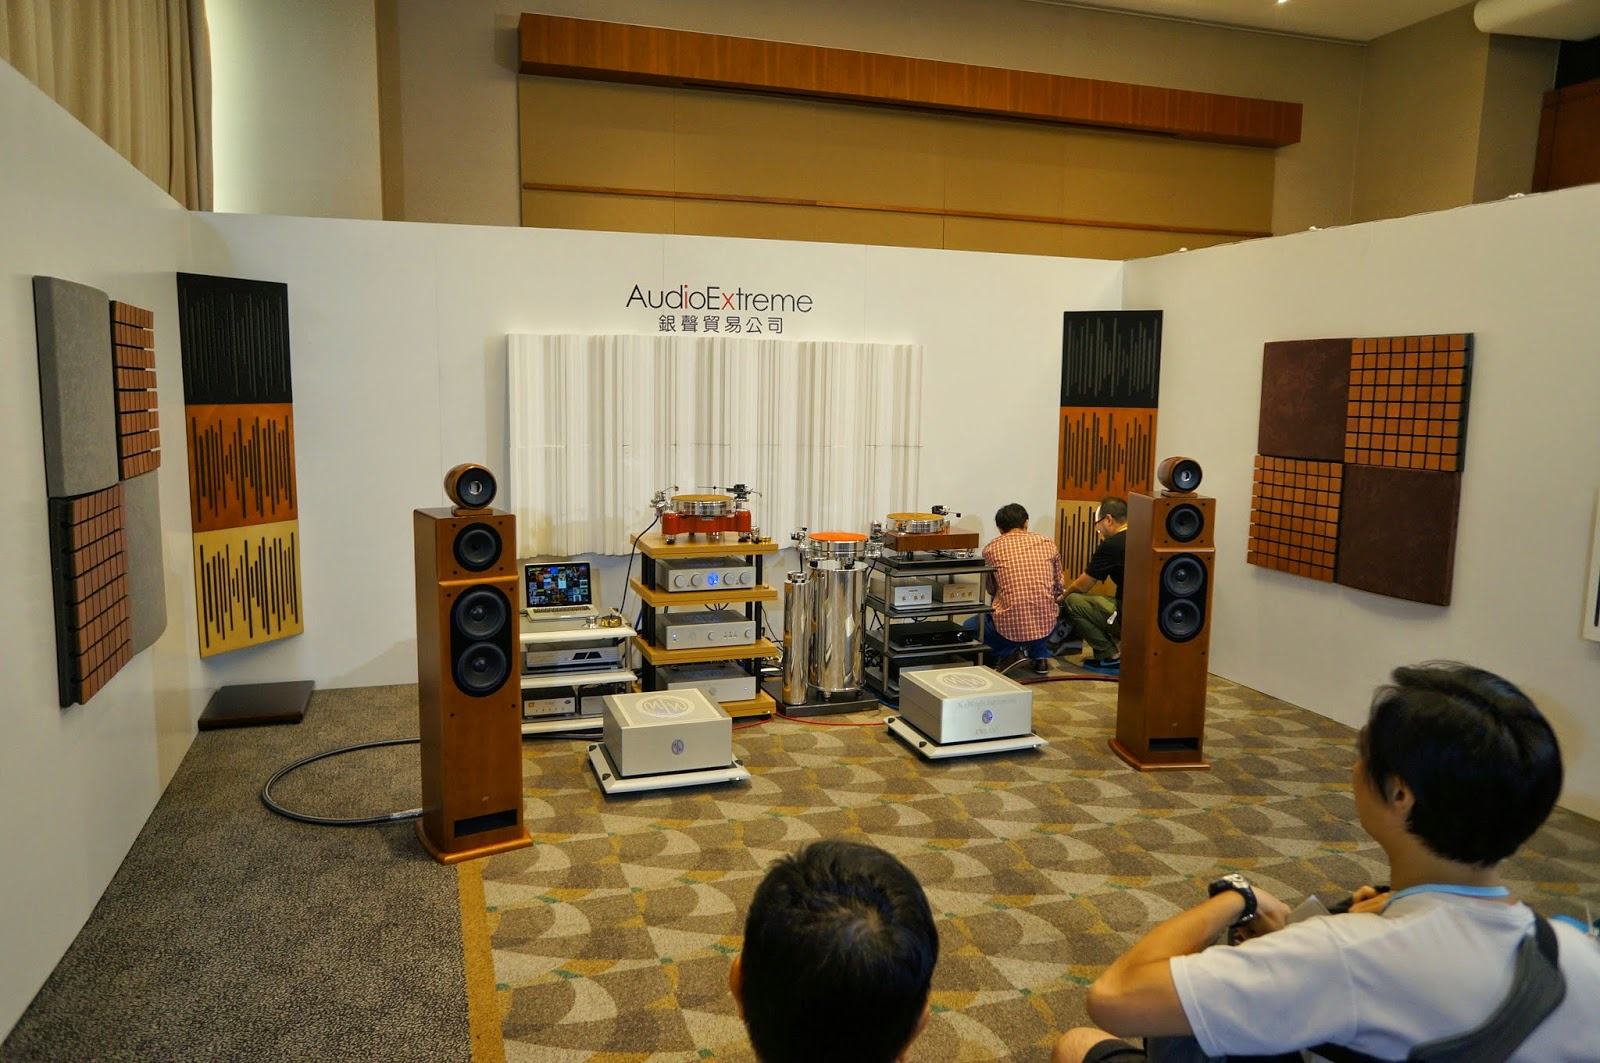 Hong Kong High End Audio visual Show 2014 Part II